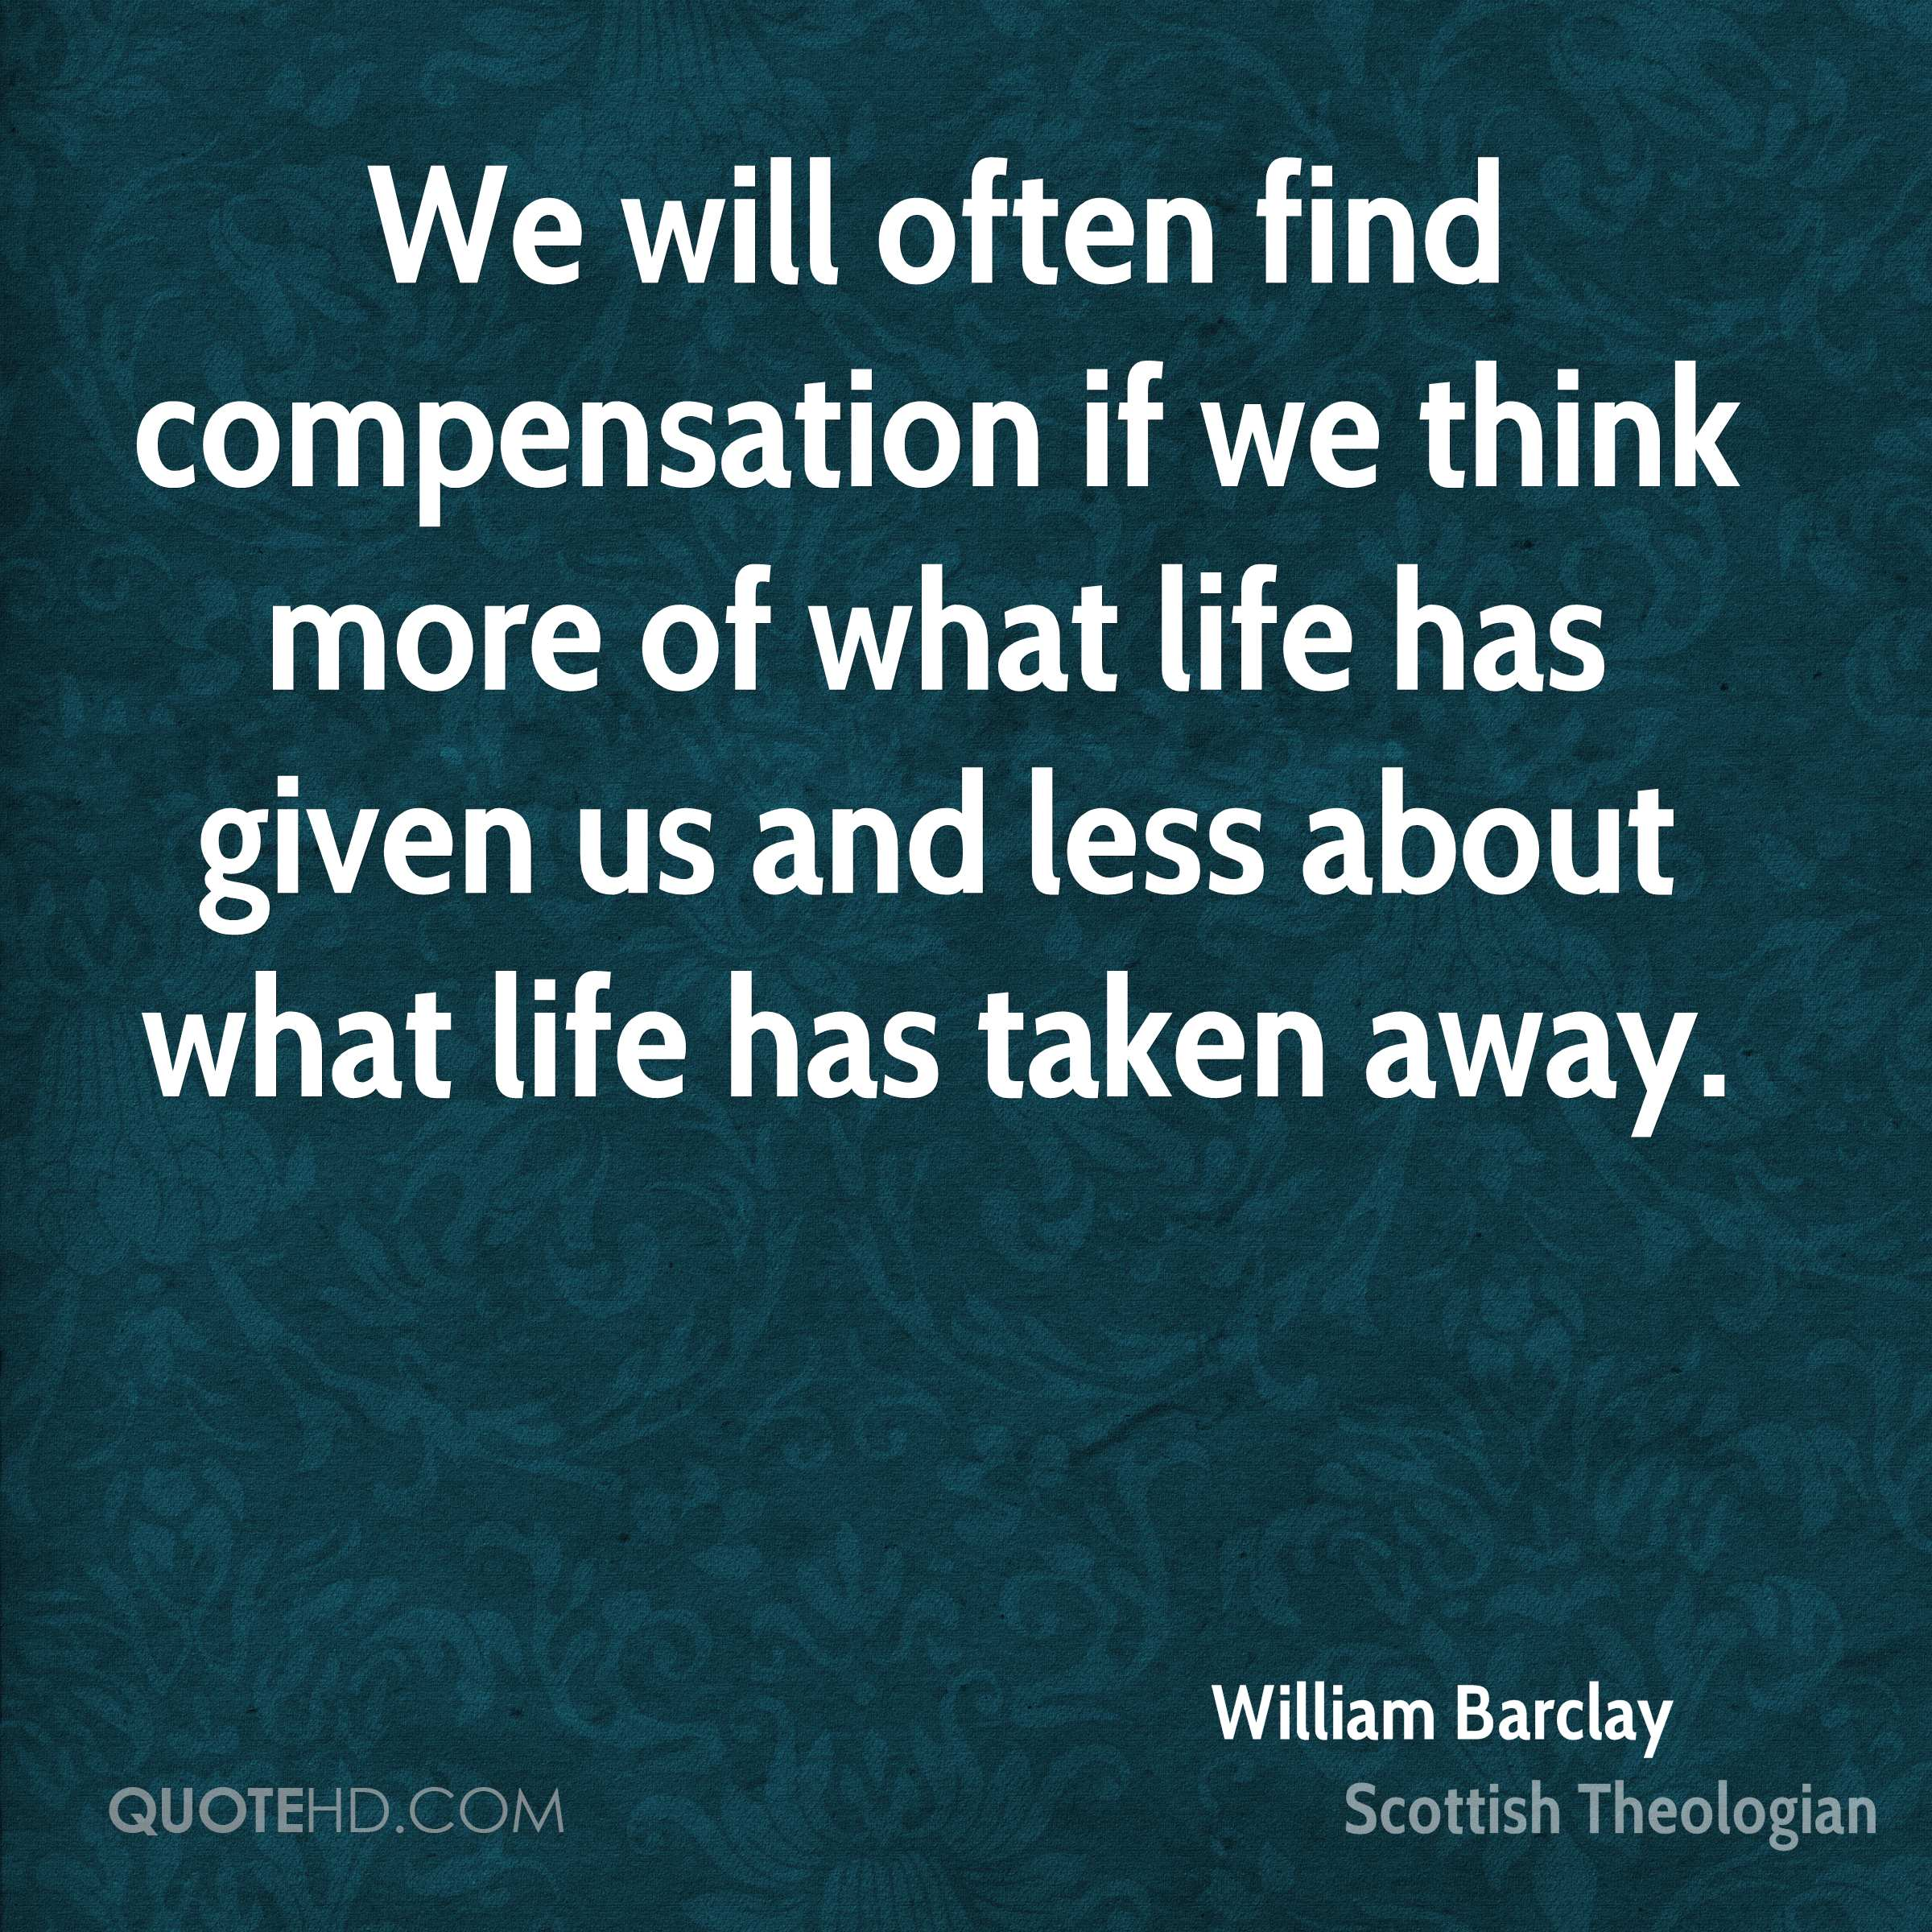 We will often find compensation if we think more of what life has given us and less about what life has taken away.